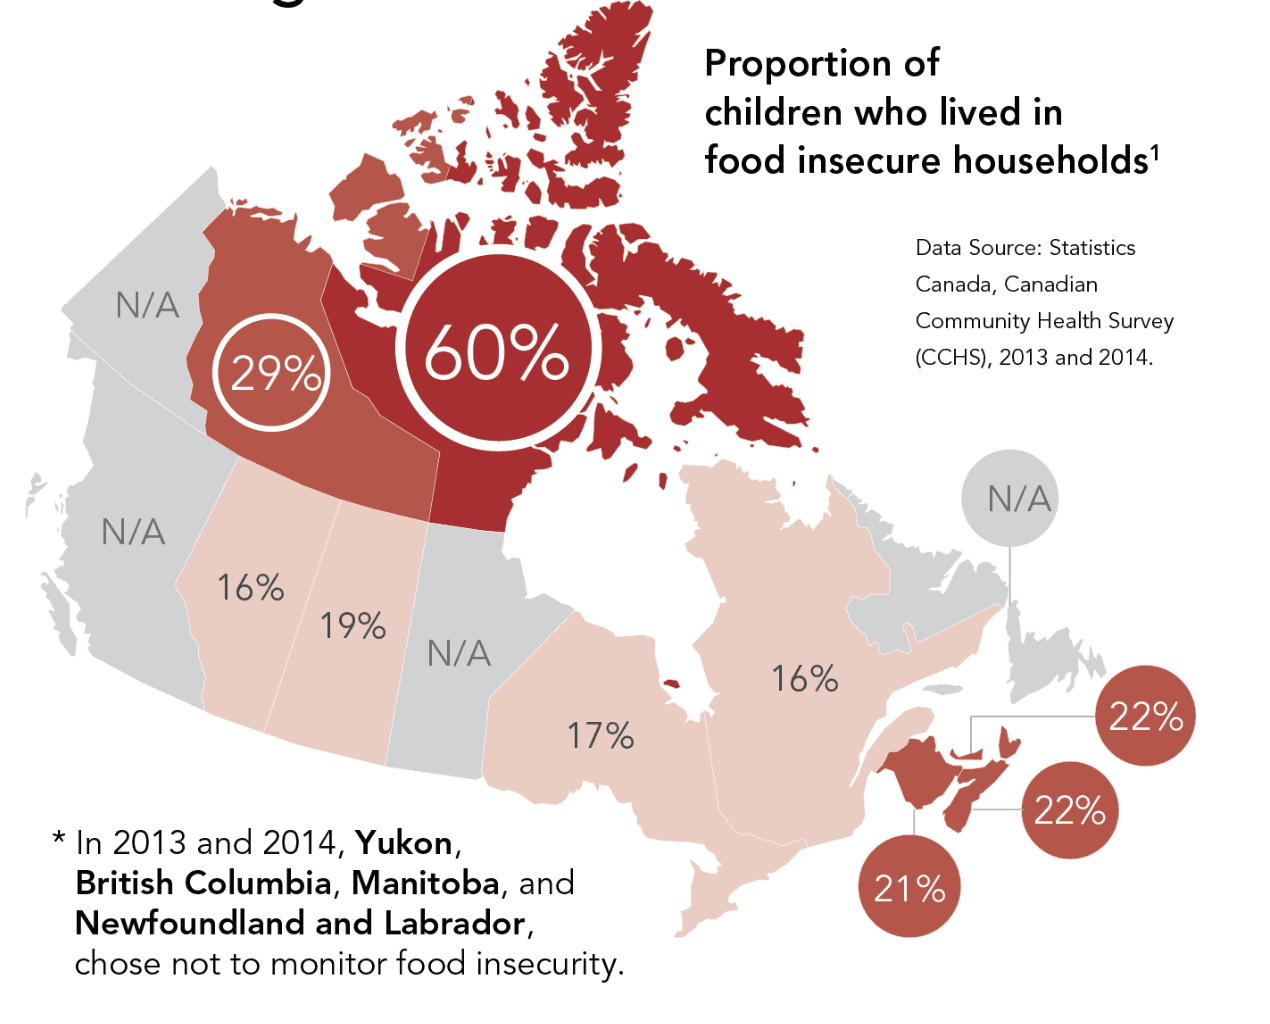 Proportion of children living in food insecure households